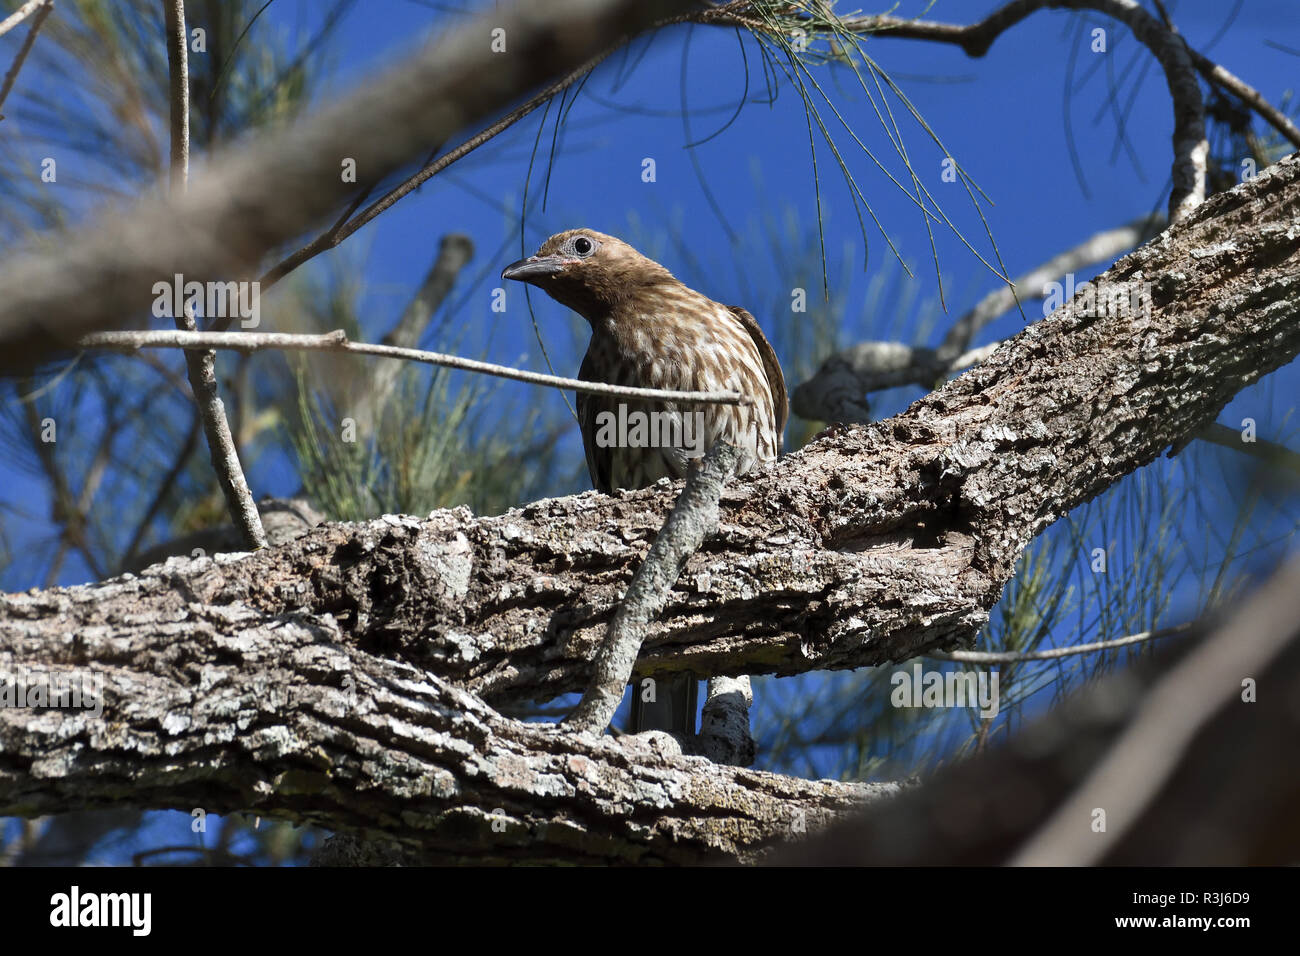 An Australian, Queensland Female Figbird ( Sphecotheres viridis ) resting perched on a tree branch Stock Photo